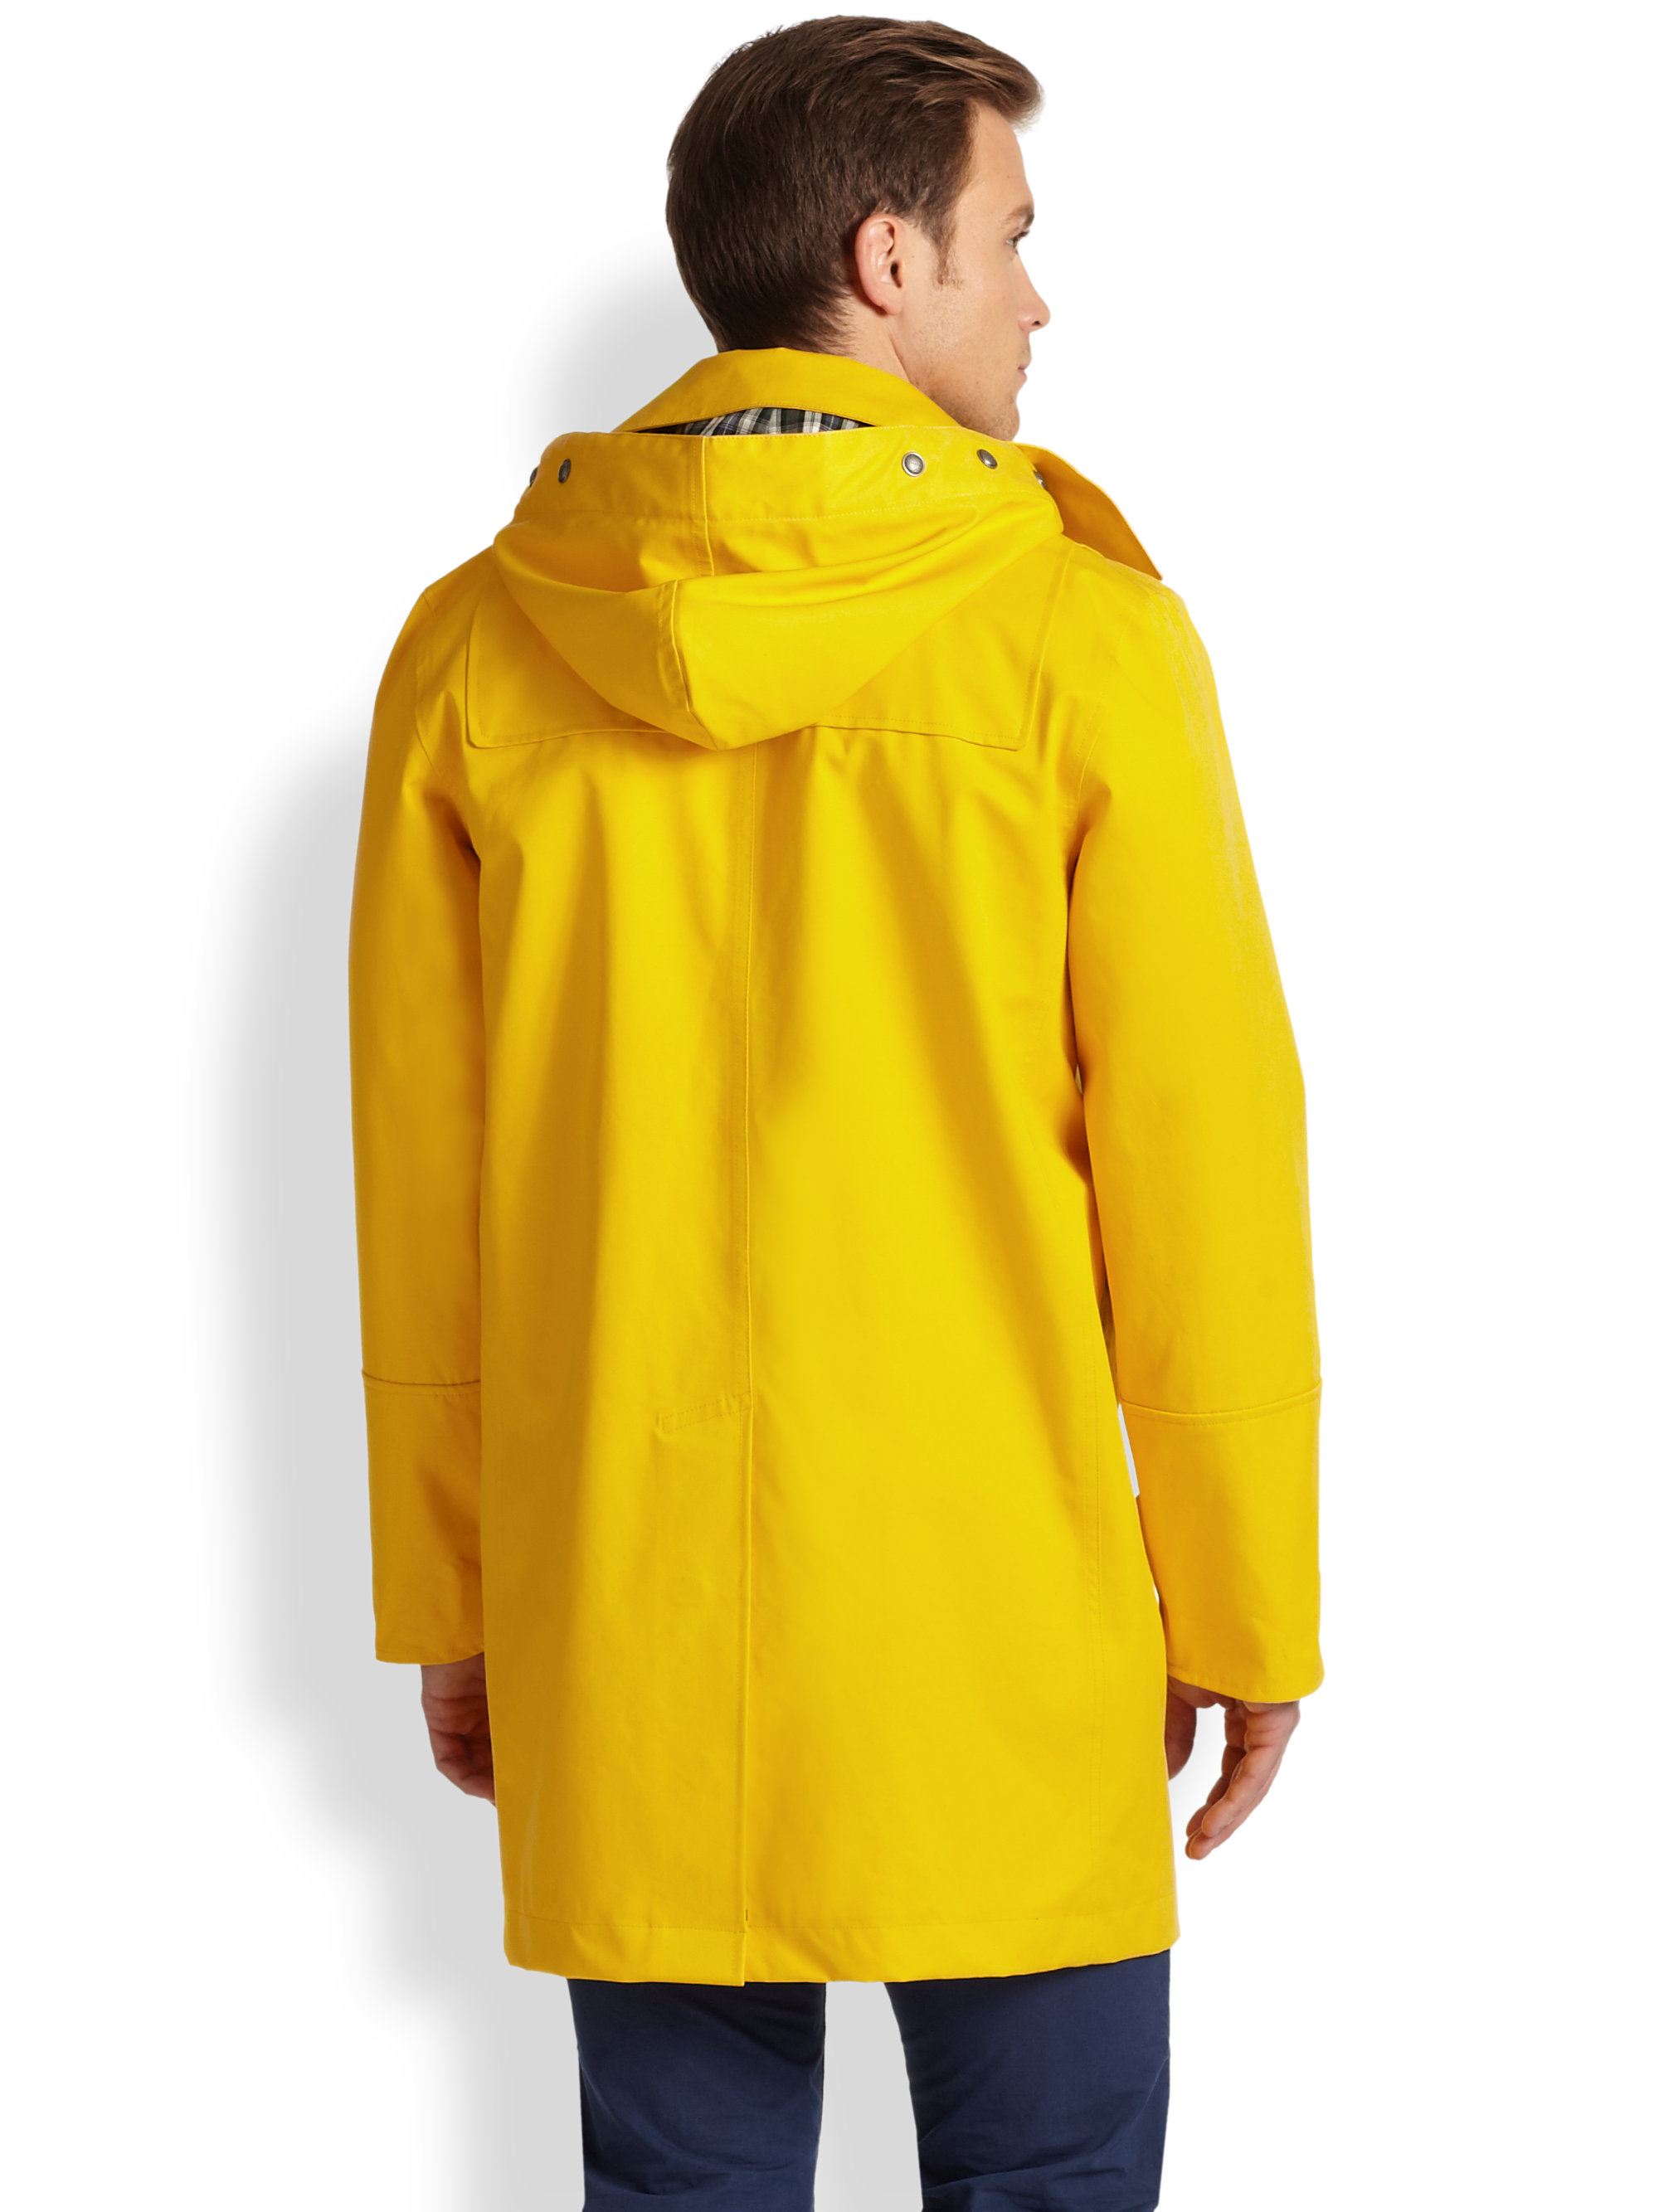 Lyst - Polo Ralph Lauren Rlx Toggle Coat in Yellow for Men 0a4809473715e